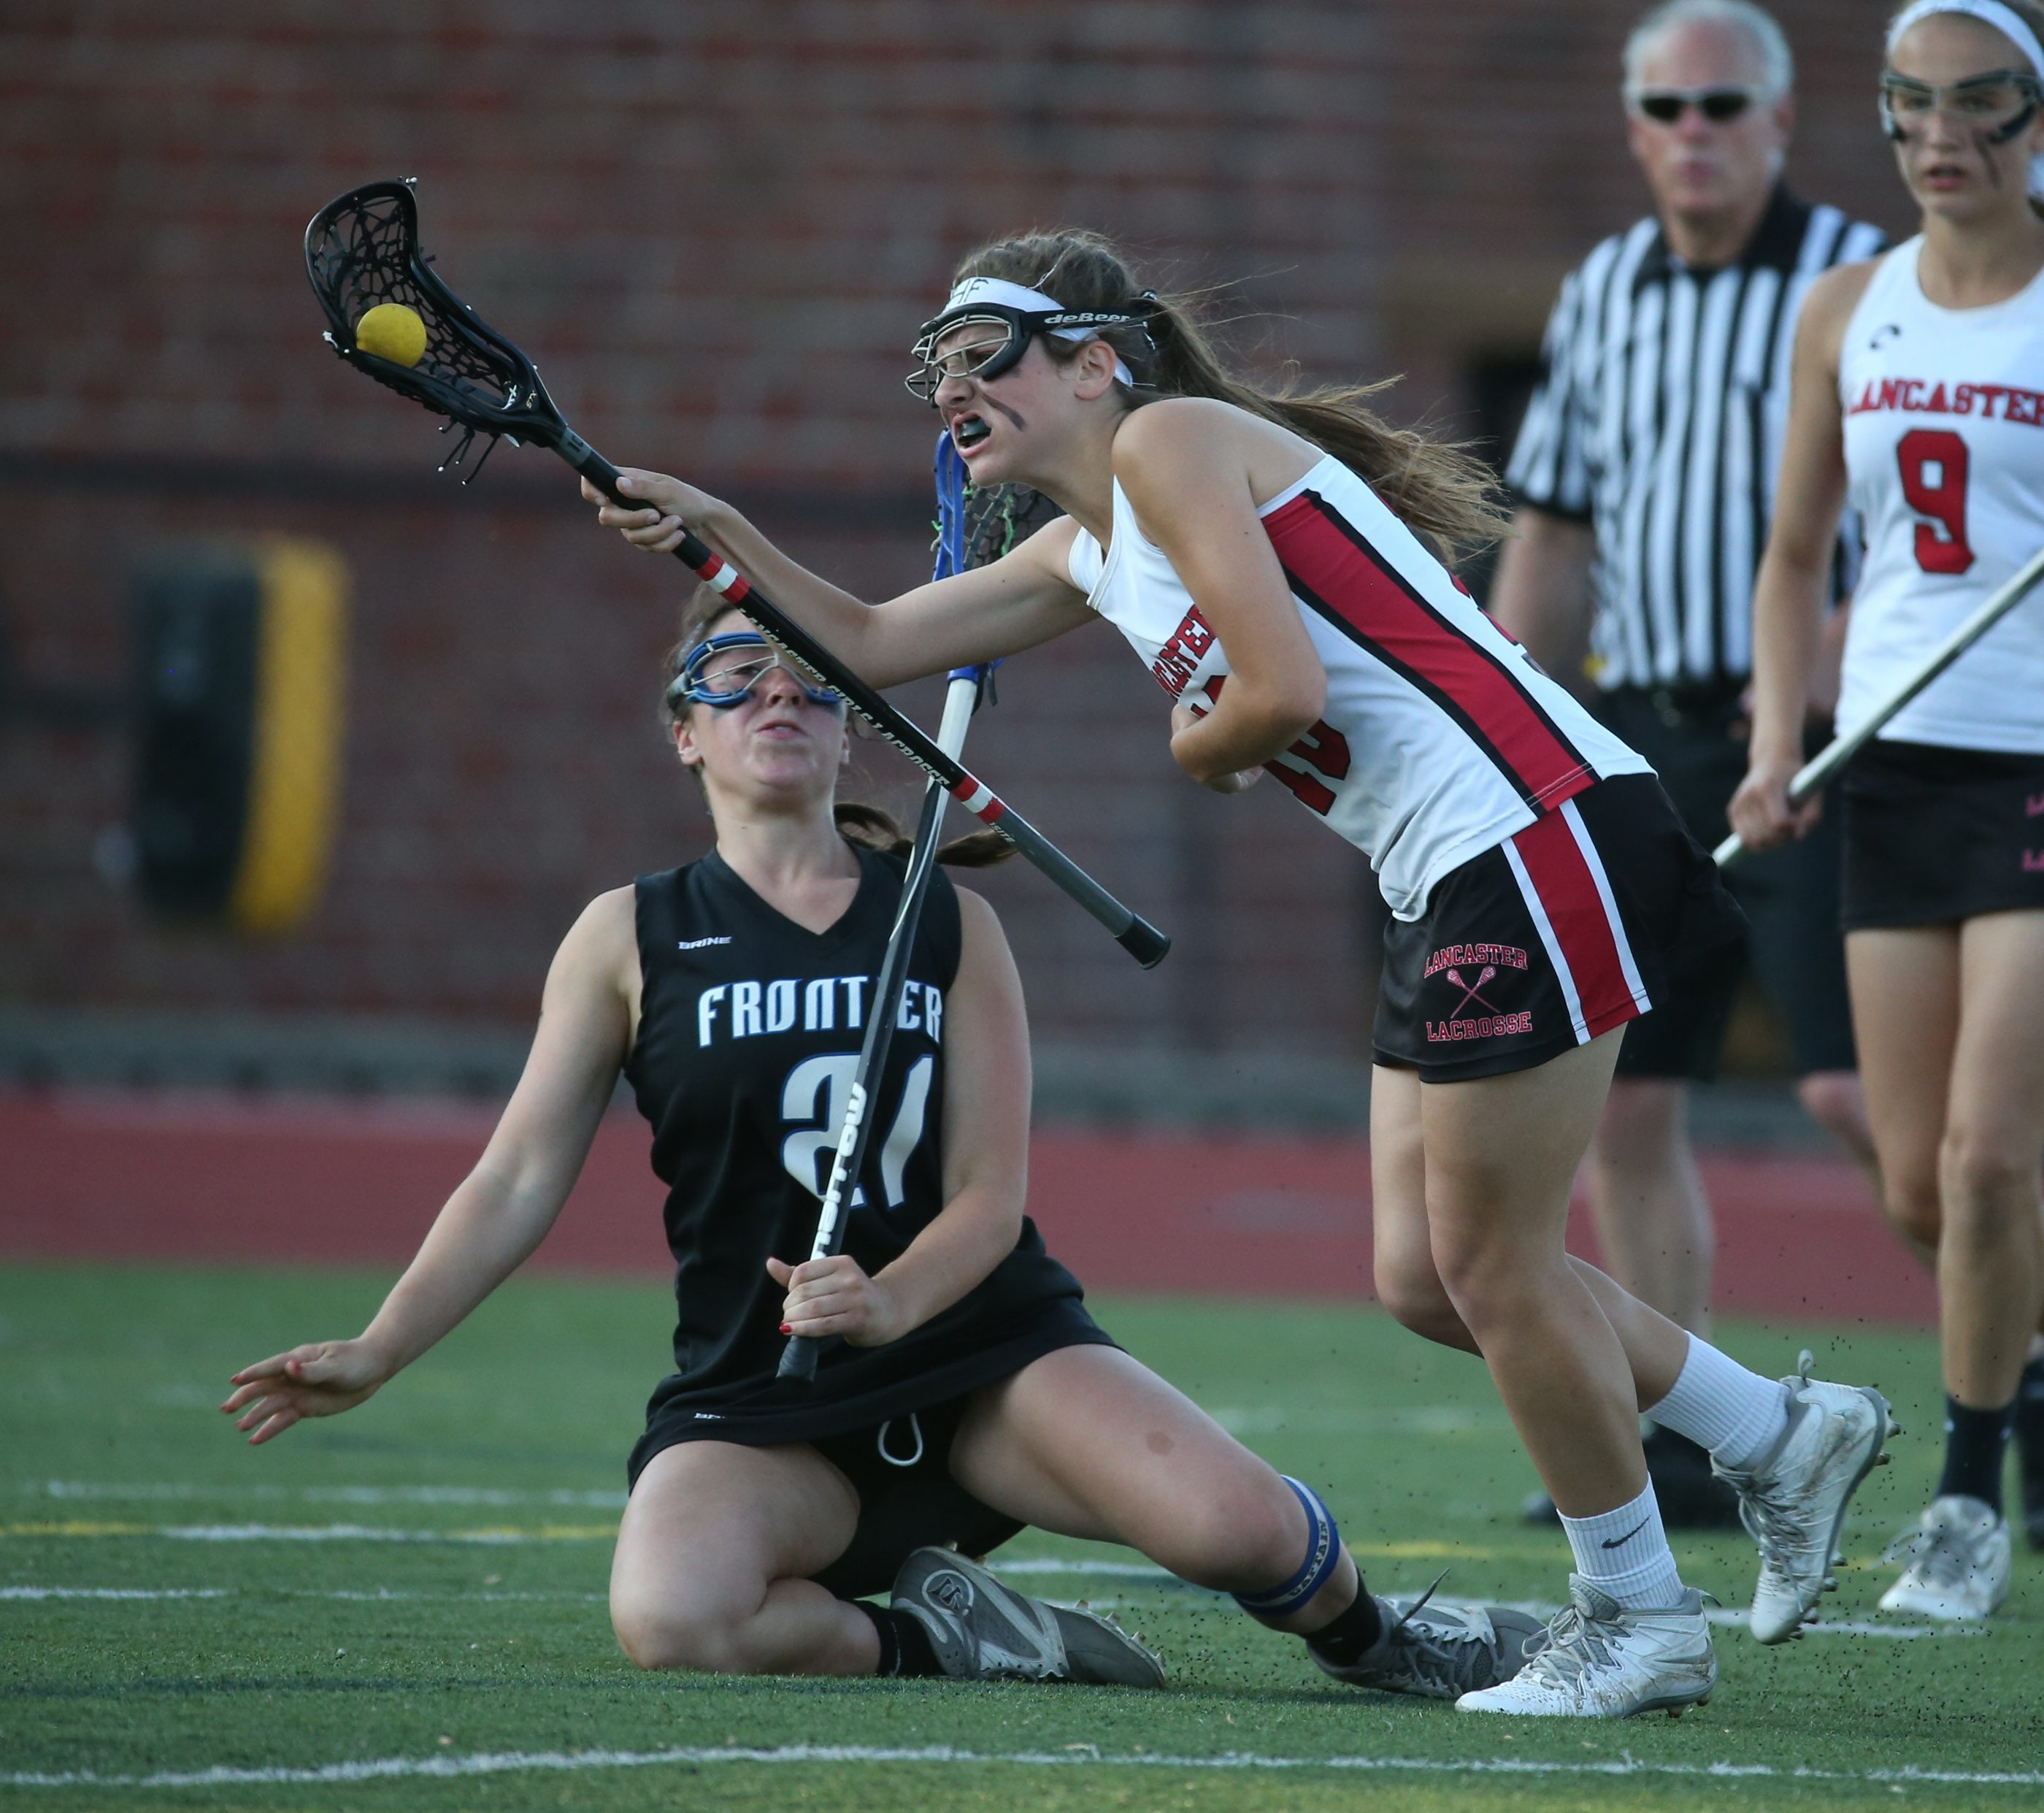 Lancaster's Riley Lucarelli battles Frontier's Michaela Kacmarski for the ball in the first half in the Class A section VI girls lacrosse finals at Robert E Rich All High Stadium in Buffalo,NY on Thursday, May 28, 2015.  (James P. McCoy/ Buffalo News)